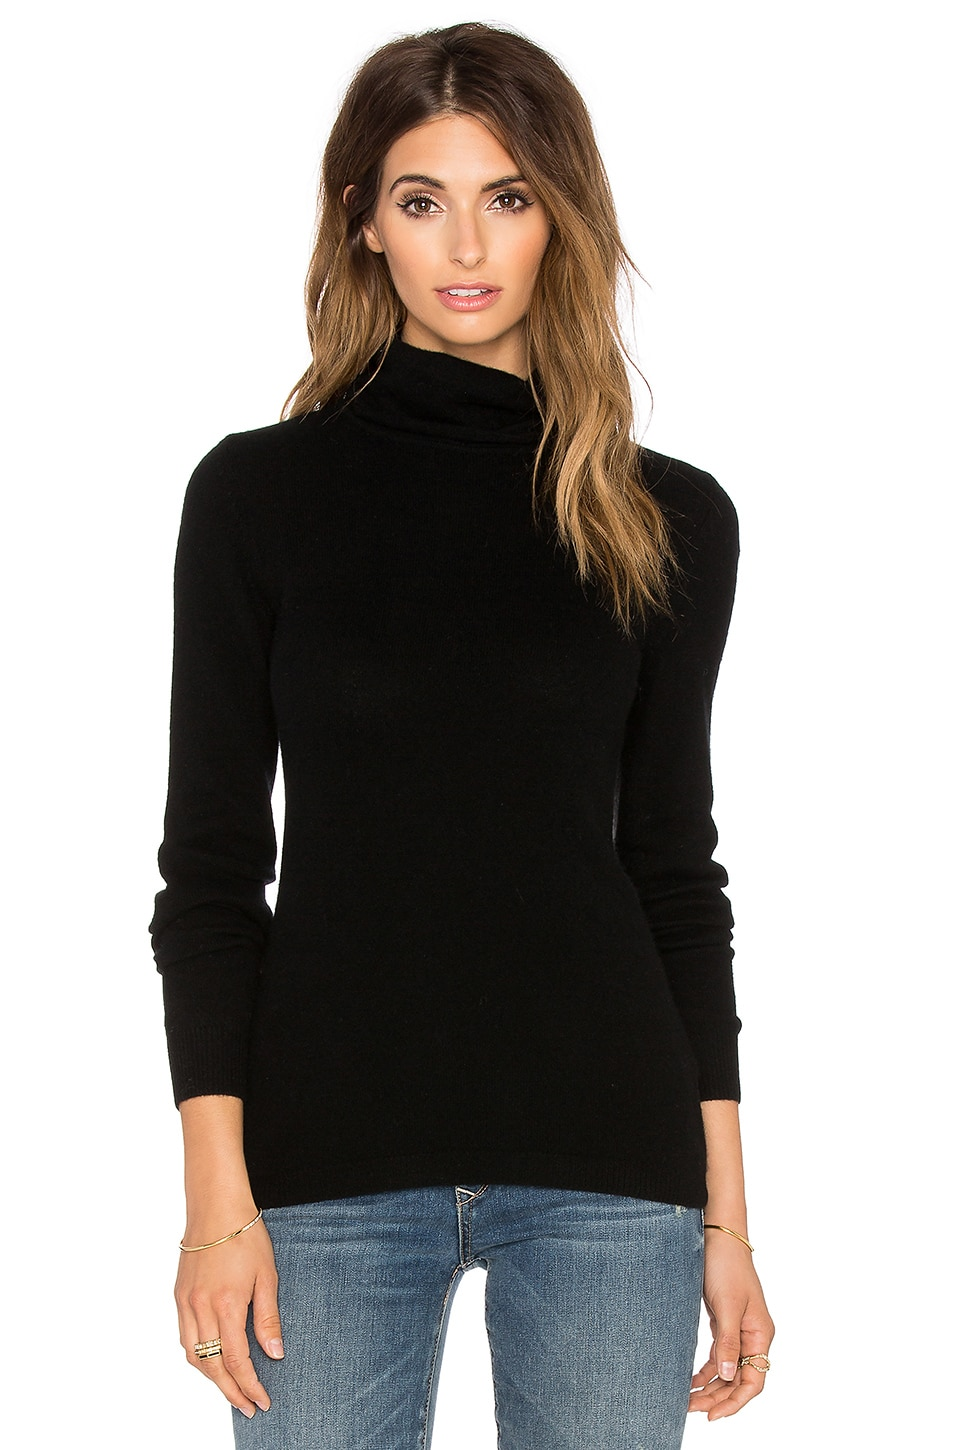 AG Adriano Goldschmied Hayden Cashmere Sweater in Black